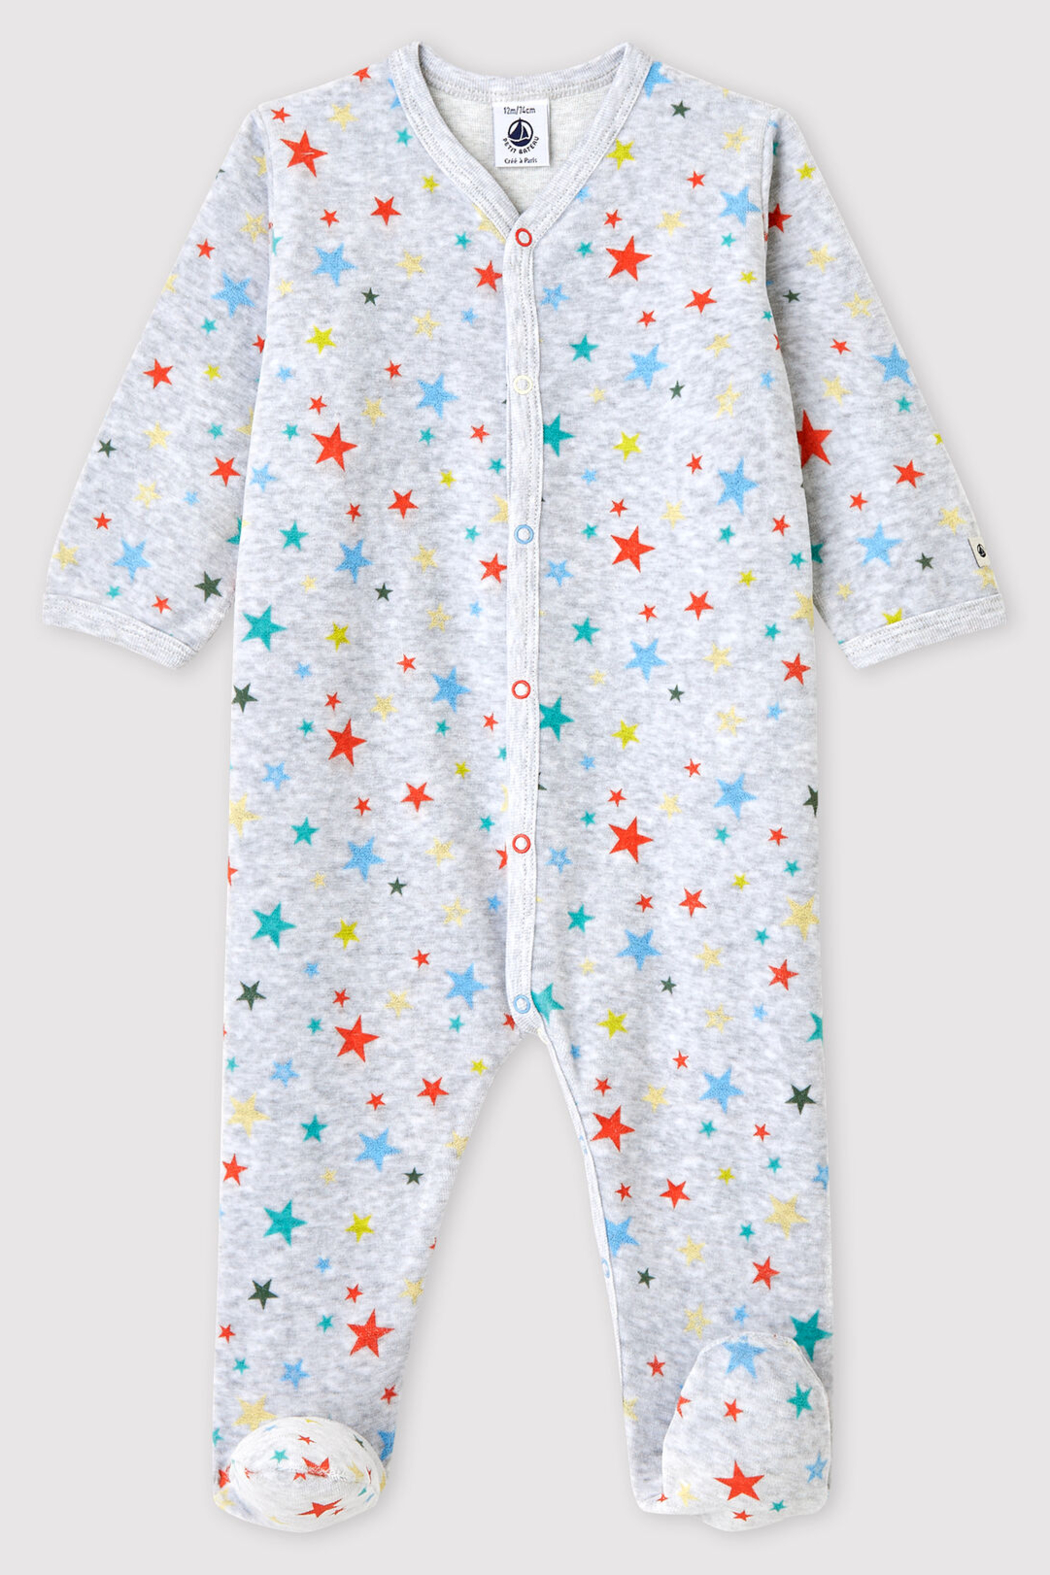 Petit Bateau Baby Onesie Footie Mottled Gray With Stars In Chenille - Main Image